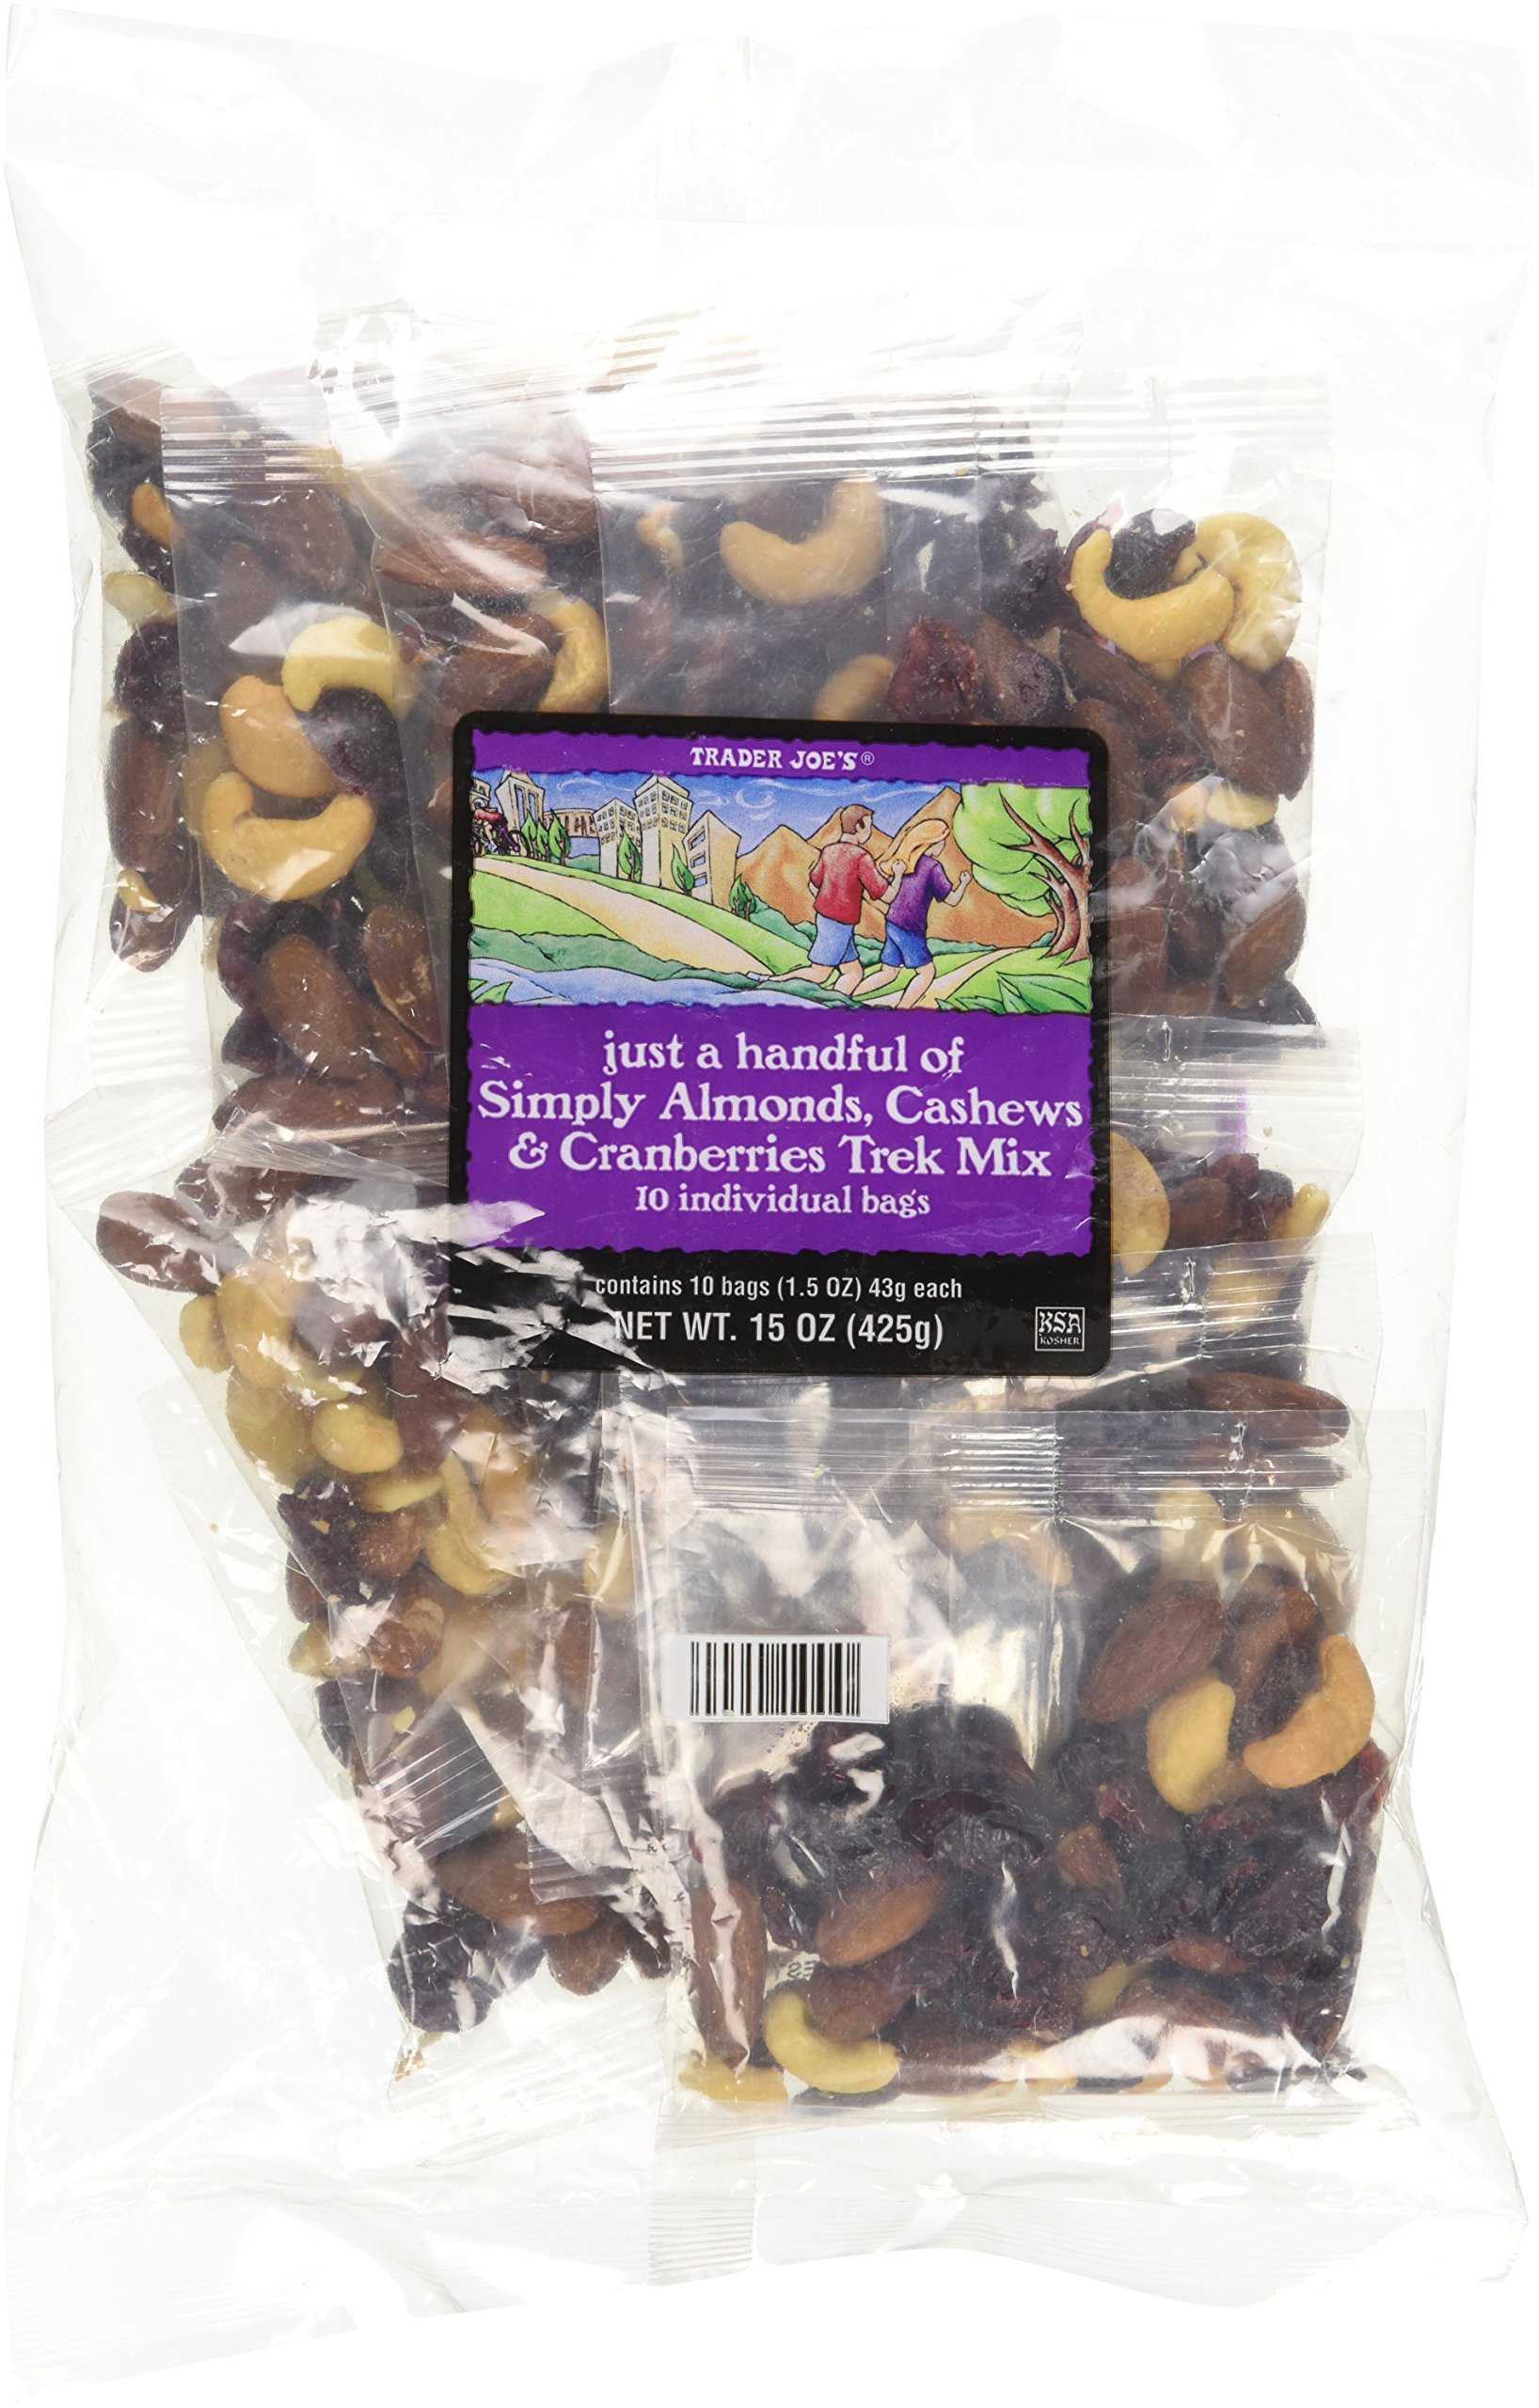 Trader Joe's Just A Handful of Simply The Best Almonds, Cashews & Cranberries Trek Mix 10 Individual Bags